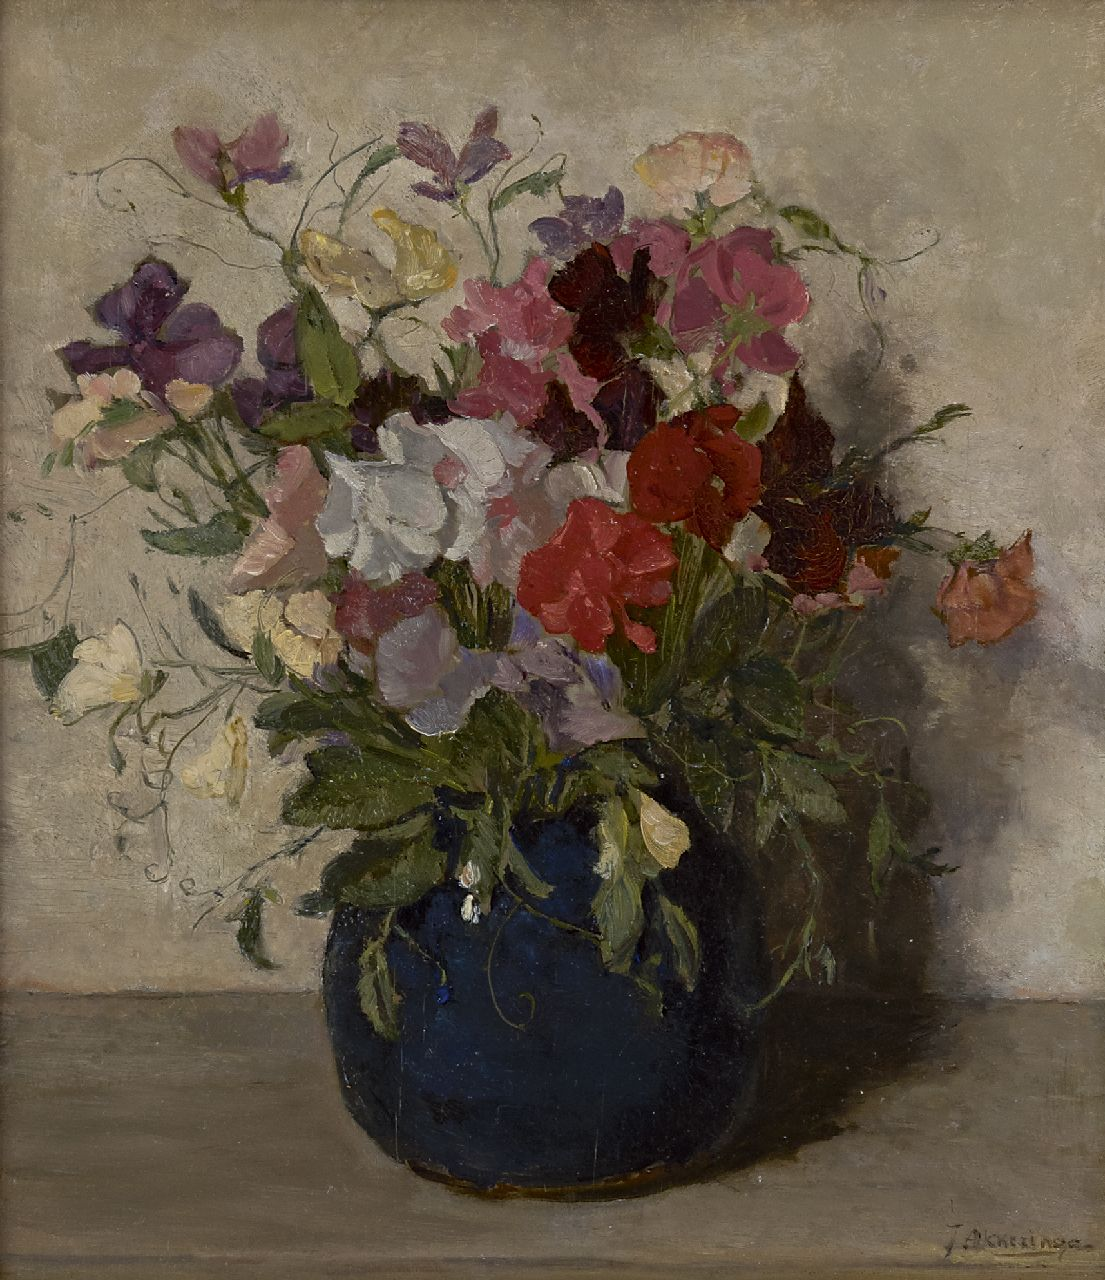 Akkeringa J.E.H.  | 'Johannes Evert' Hendrik Akkeringa, Sweet pea in a blue vase, oil on panel 32.4 x 28.2 cm, signed l.r. and on the reverse and dated 15 Oct 1937 on the reverse